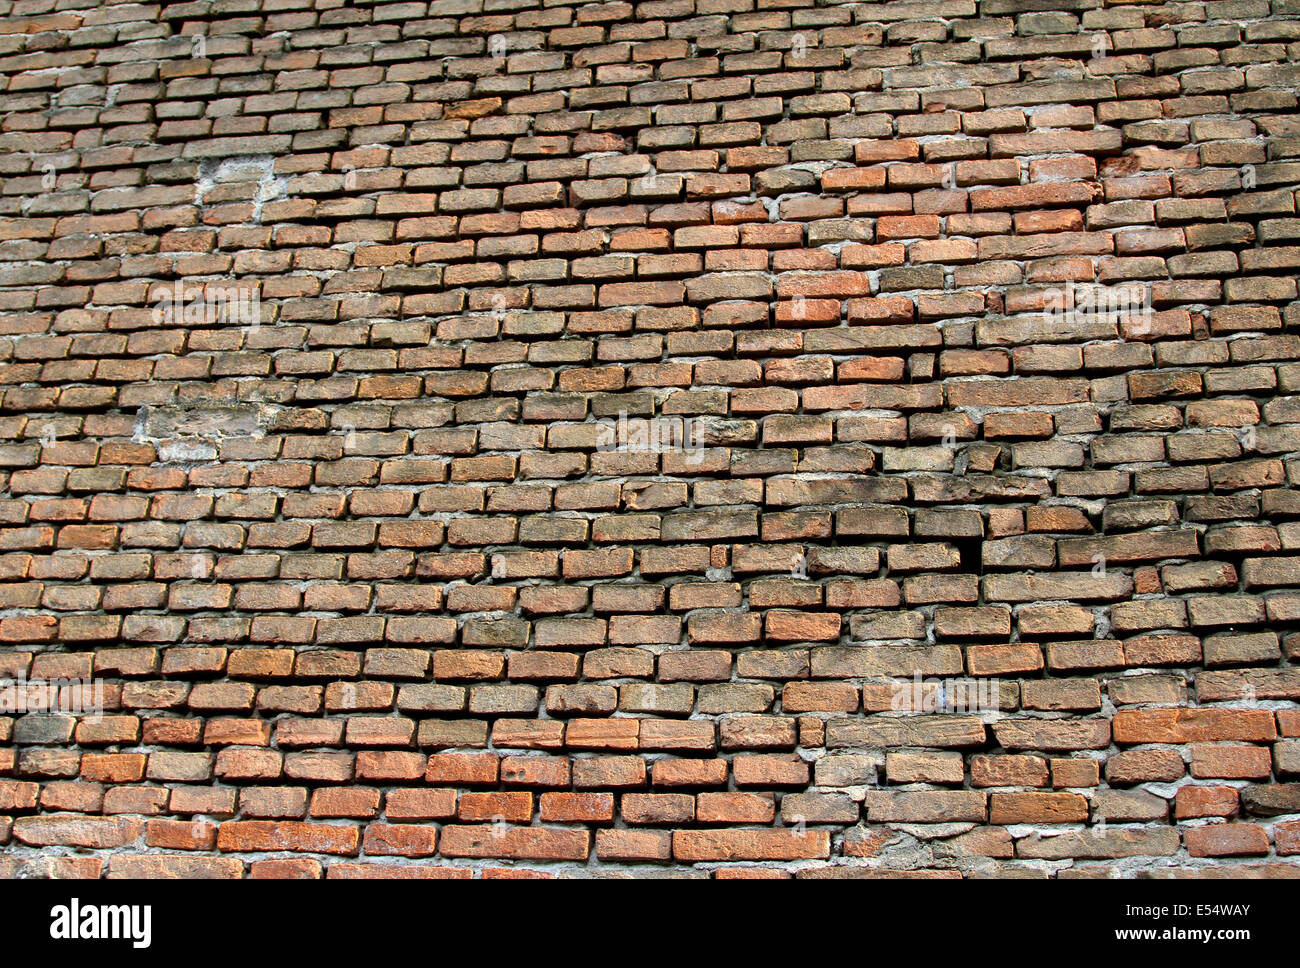 many red bricks of an impassable wall ideal as textures or BACKGROUND - Stock Image